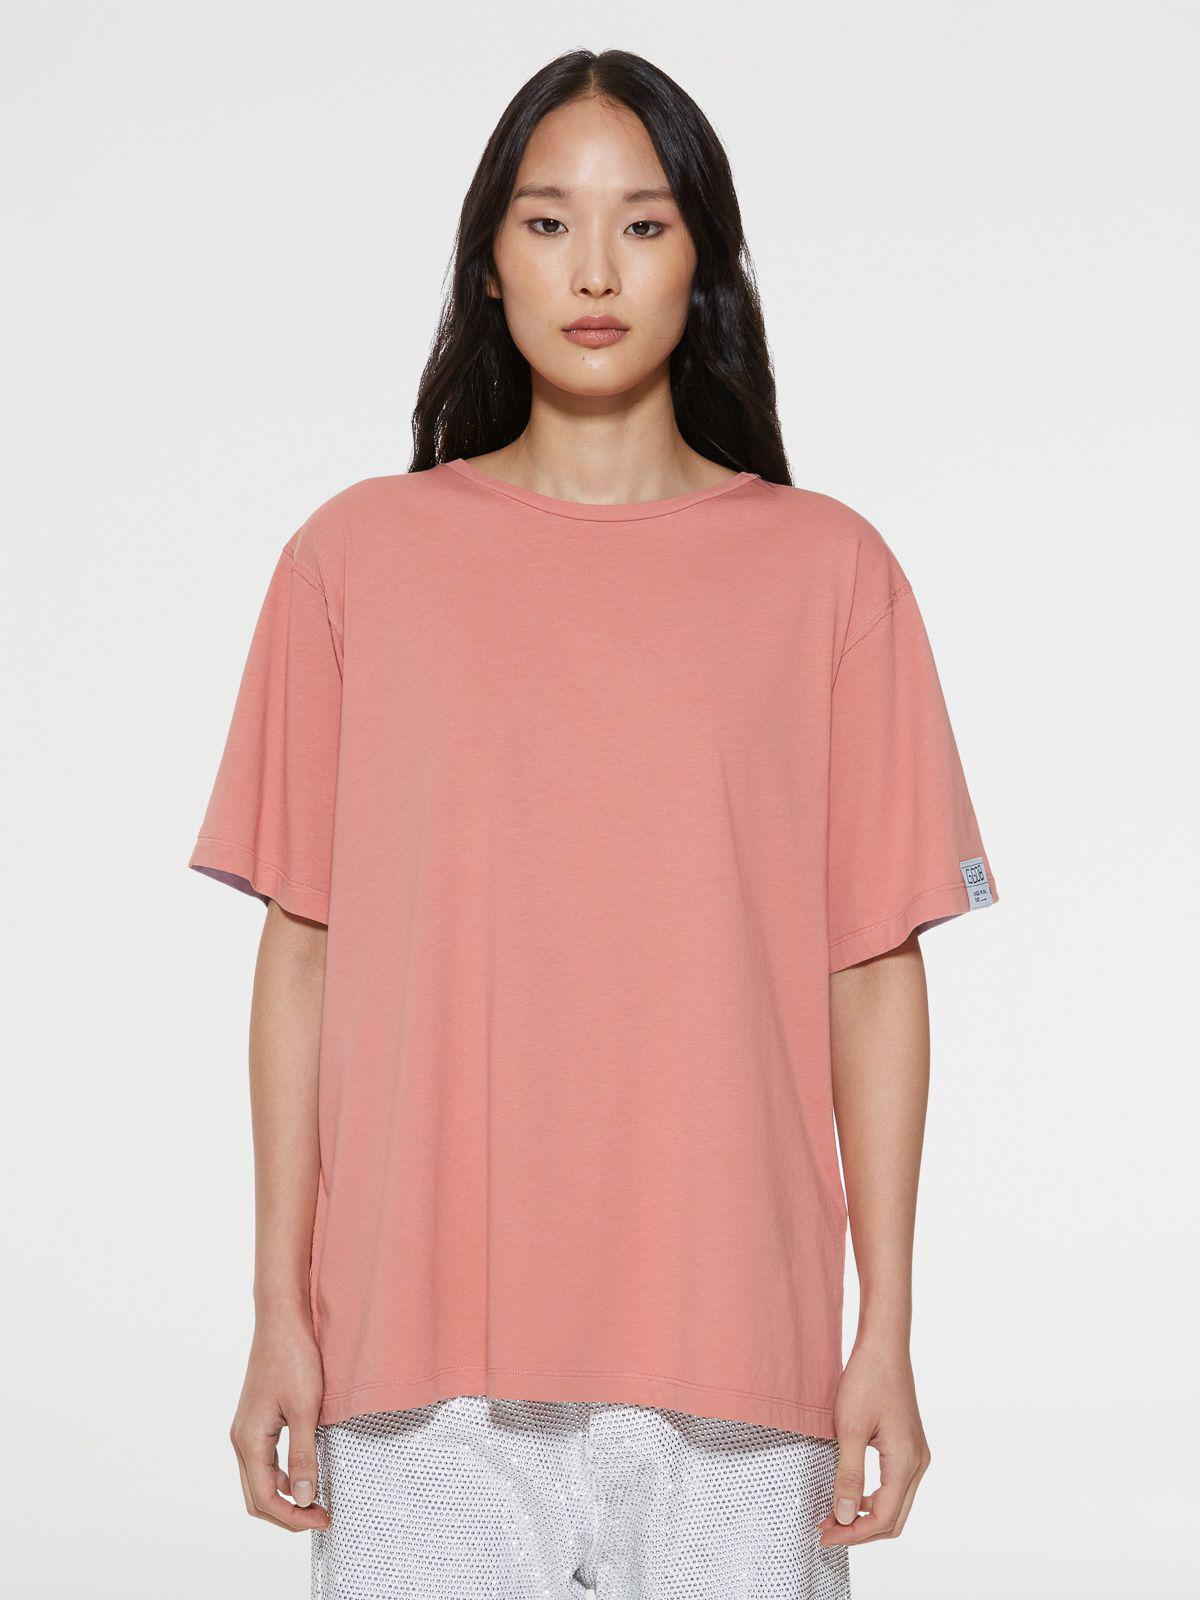 Pink Aira T-shirt with print and lettering on the back